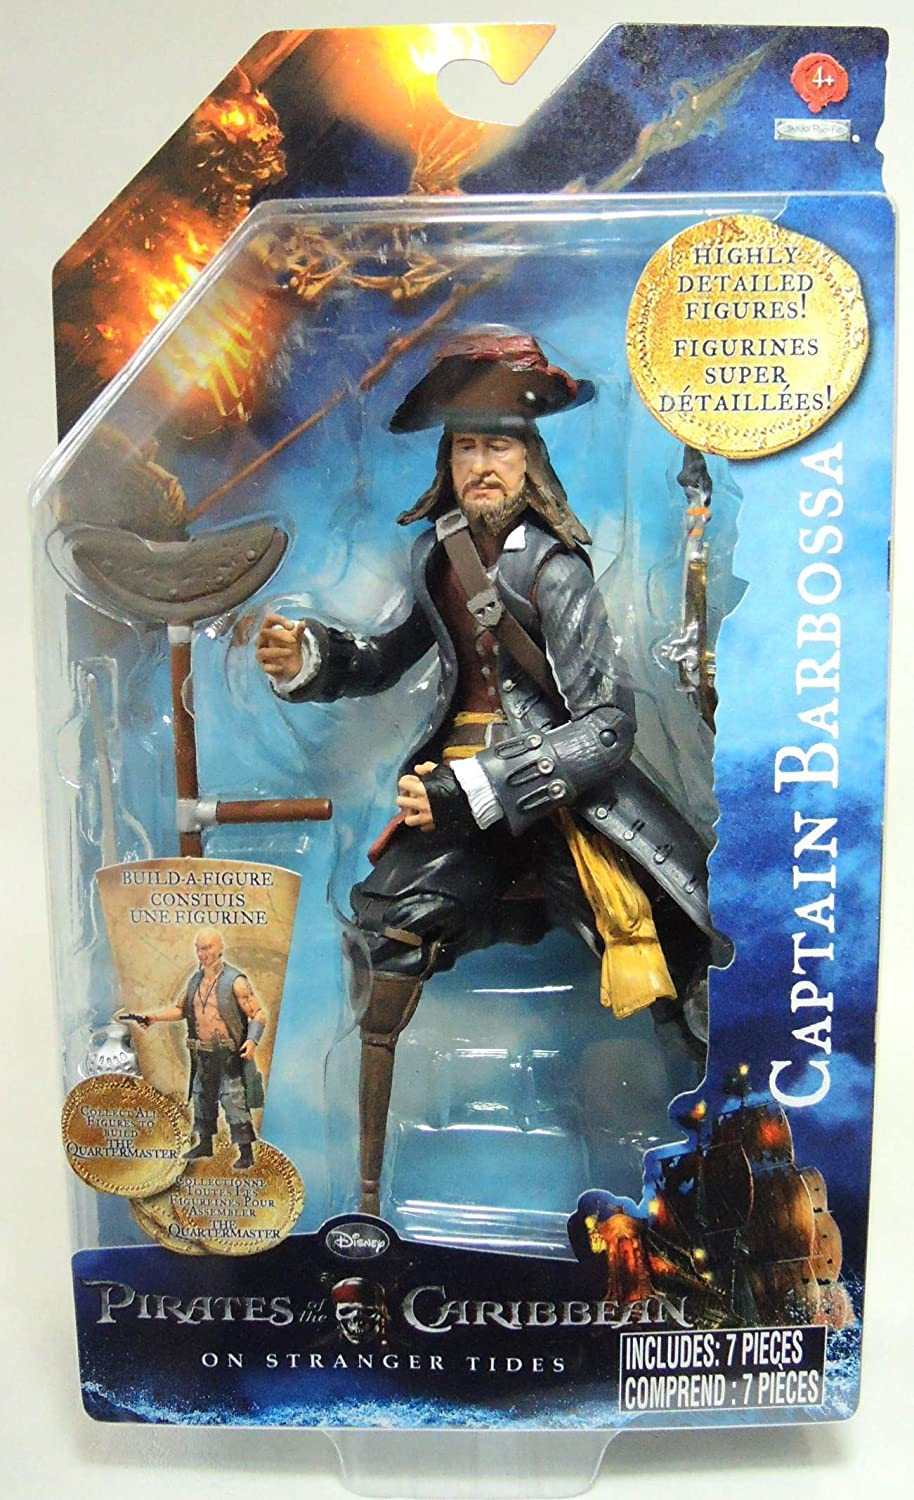 Pirates Of The Caribbean On Stranger Tides Action Figures, Series 2 Captain Barbossa